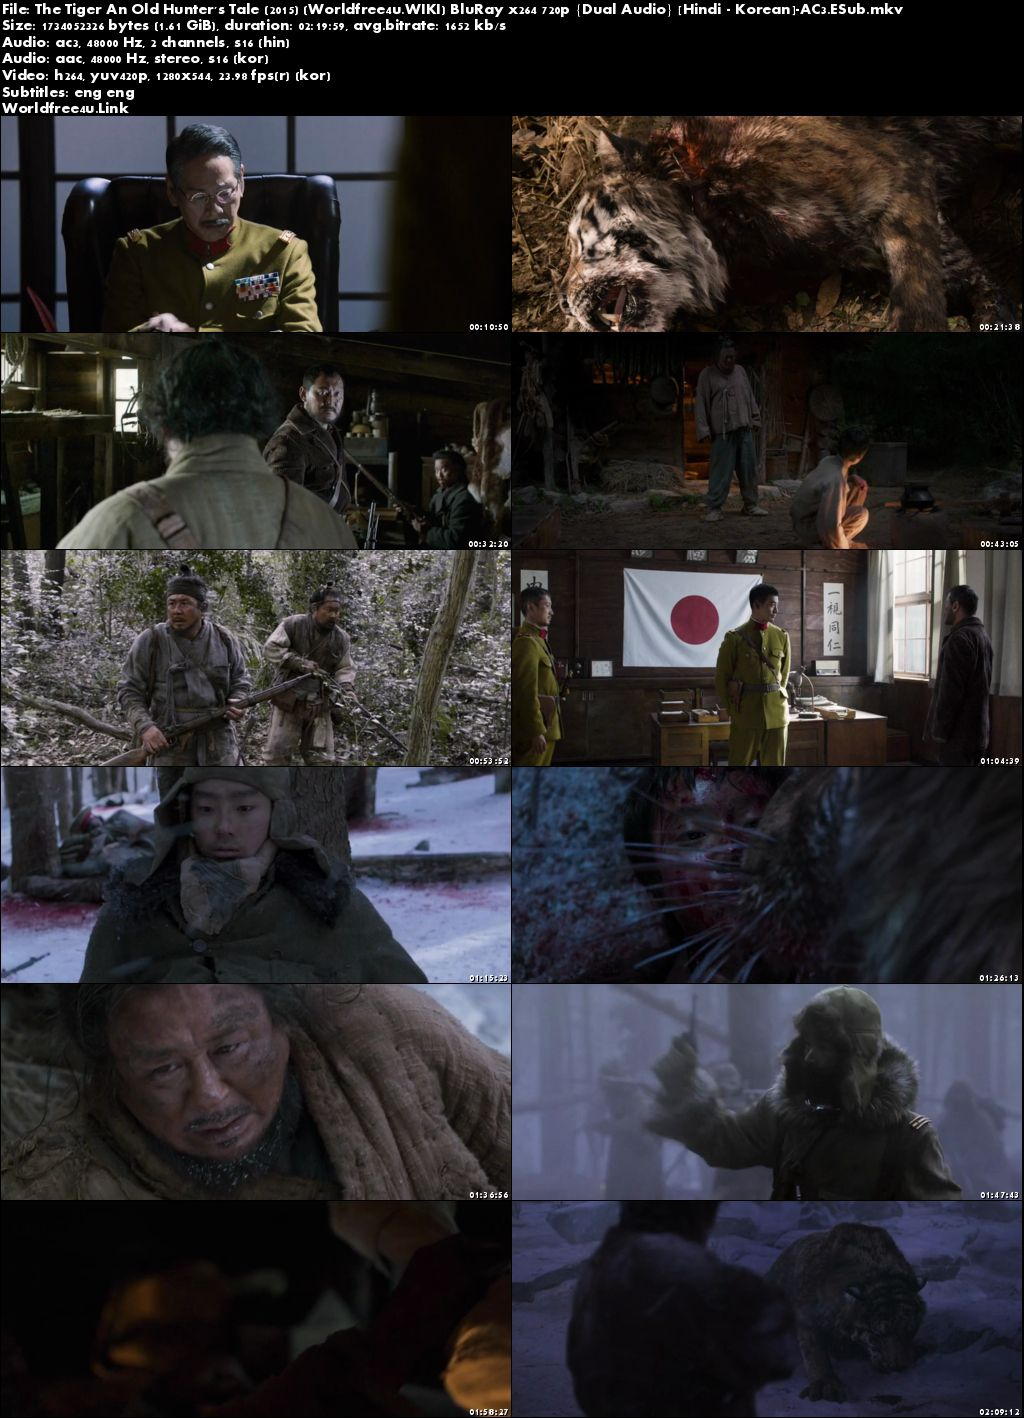 Free Download The Tiger An Old Hunter's Tale 2015  720p Dual Audio Hindi Korean